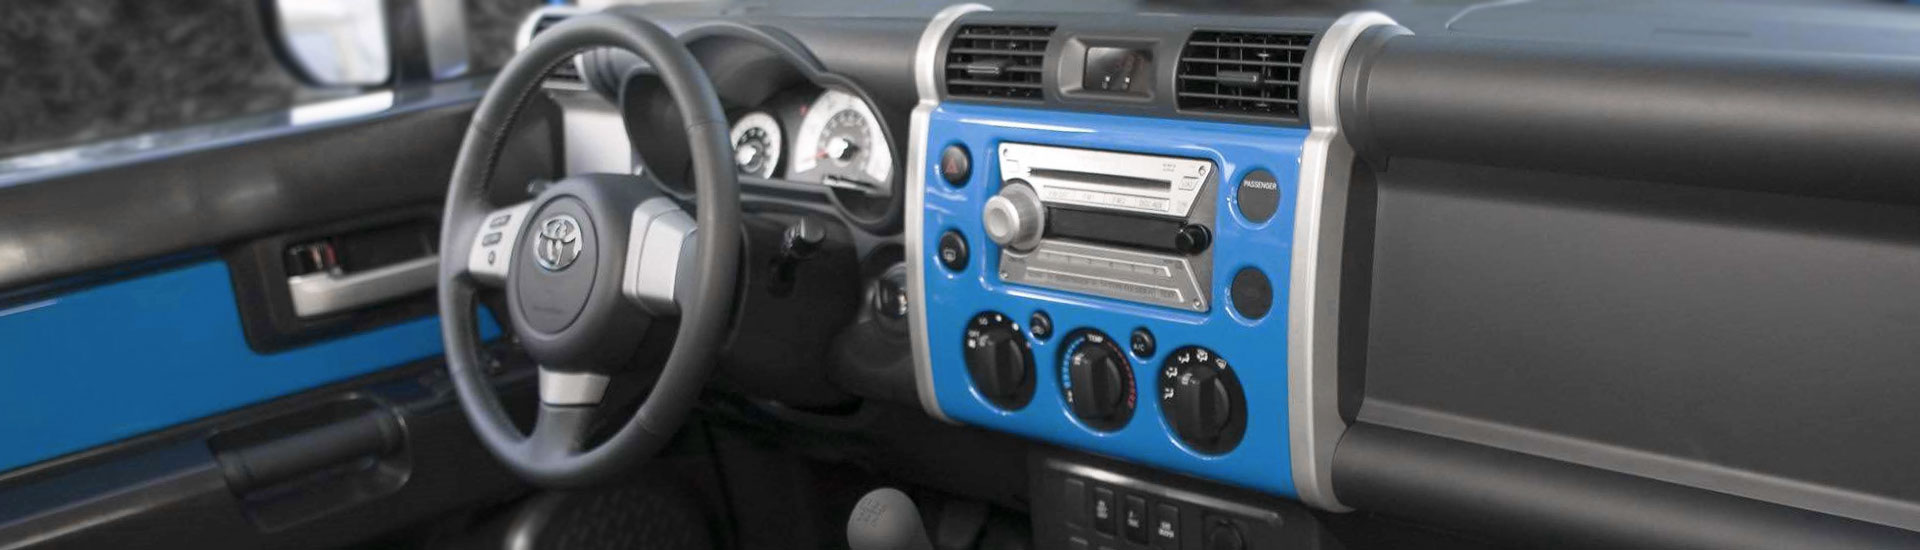 Toyota Fj Cruiser Dash Kits Custom Toyota Fj Cruiser